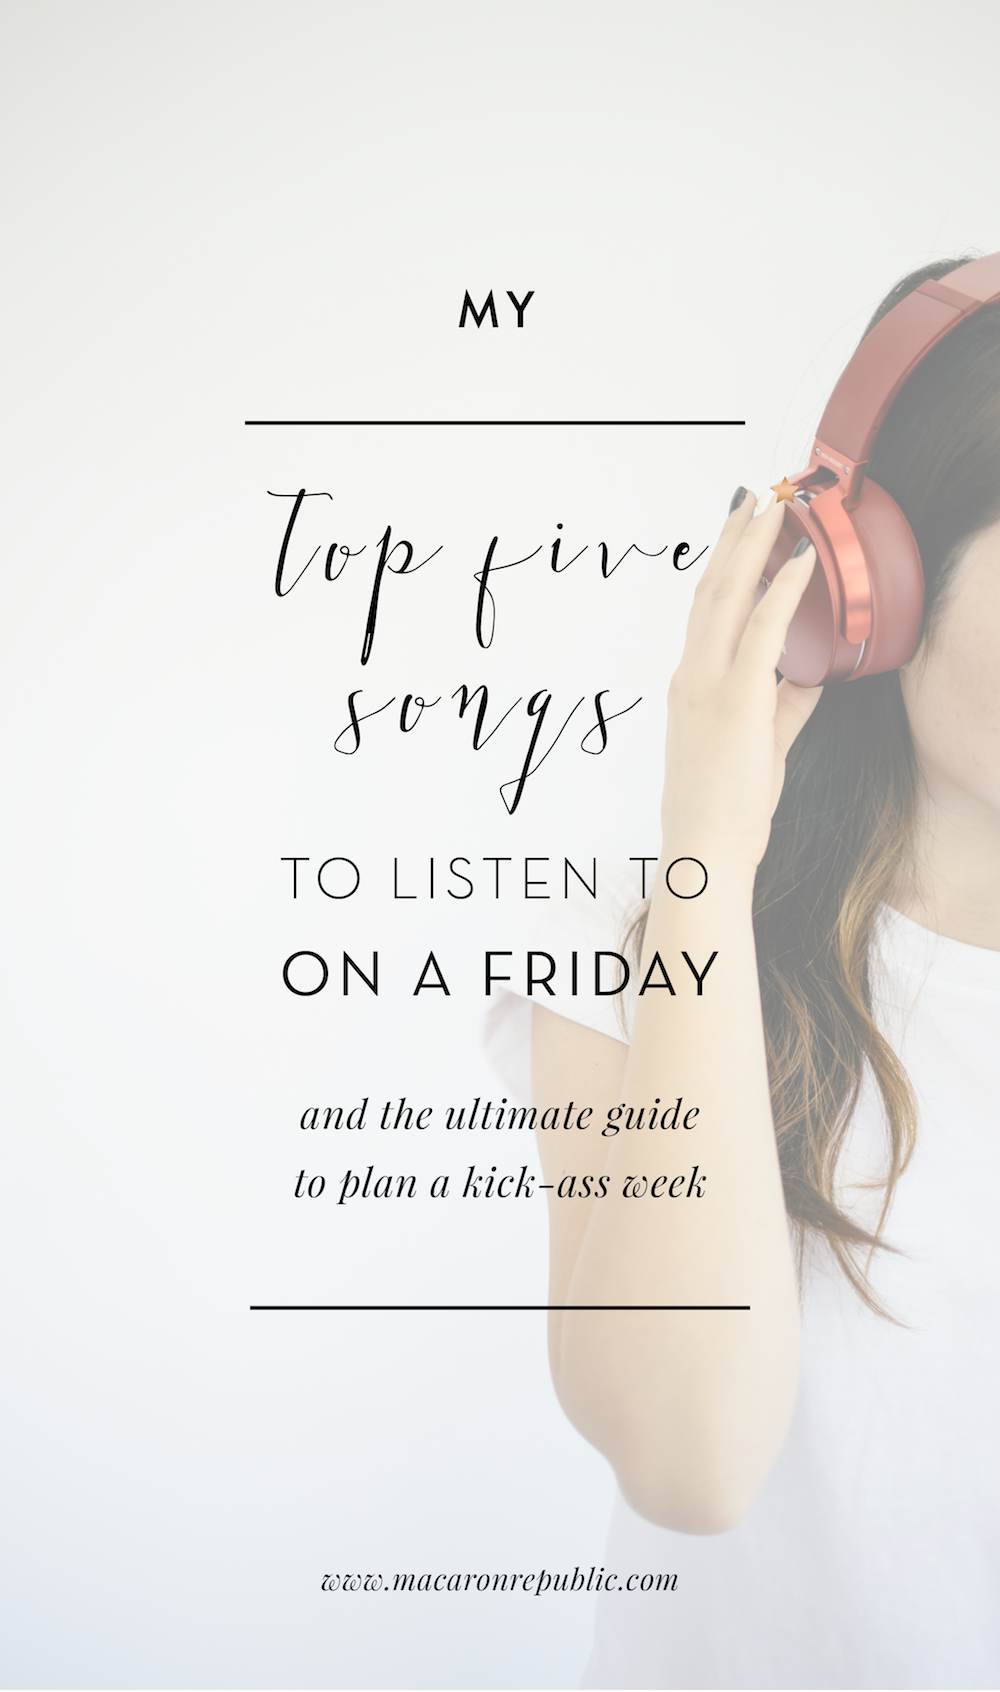 top 5 songs to plan a kick ass week - Macaron Republic